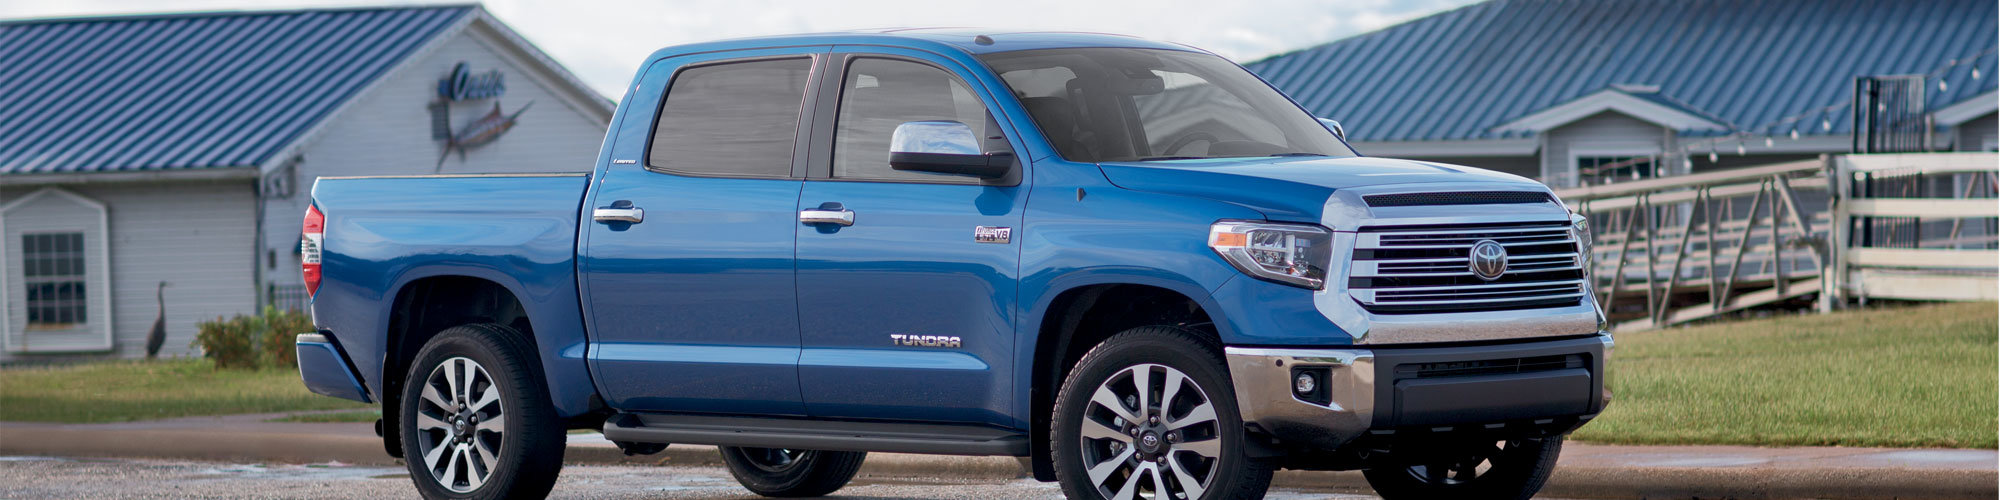 2018 Toyota Tundra Pickup Cars For Sale In Morgantown Wv Tow Package Wiring Top Trims Colors Gallery Options Packages